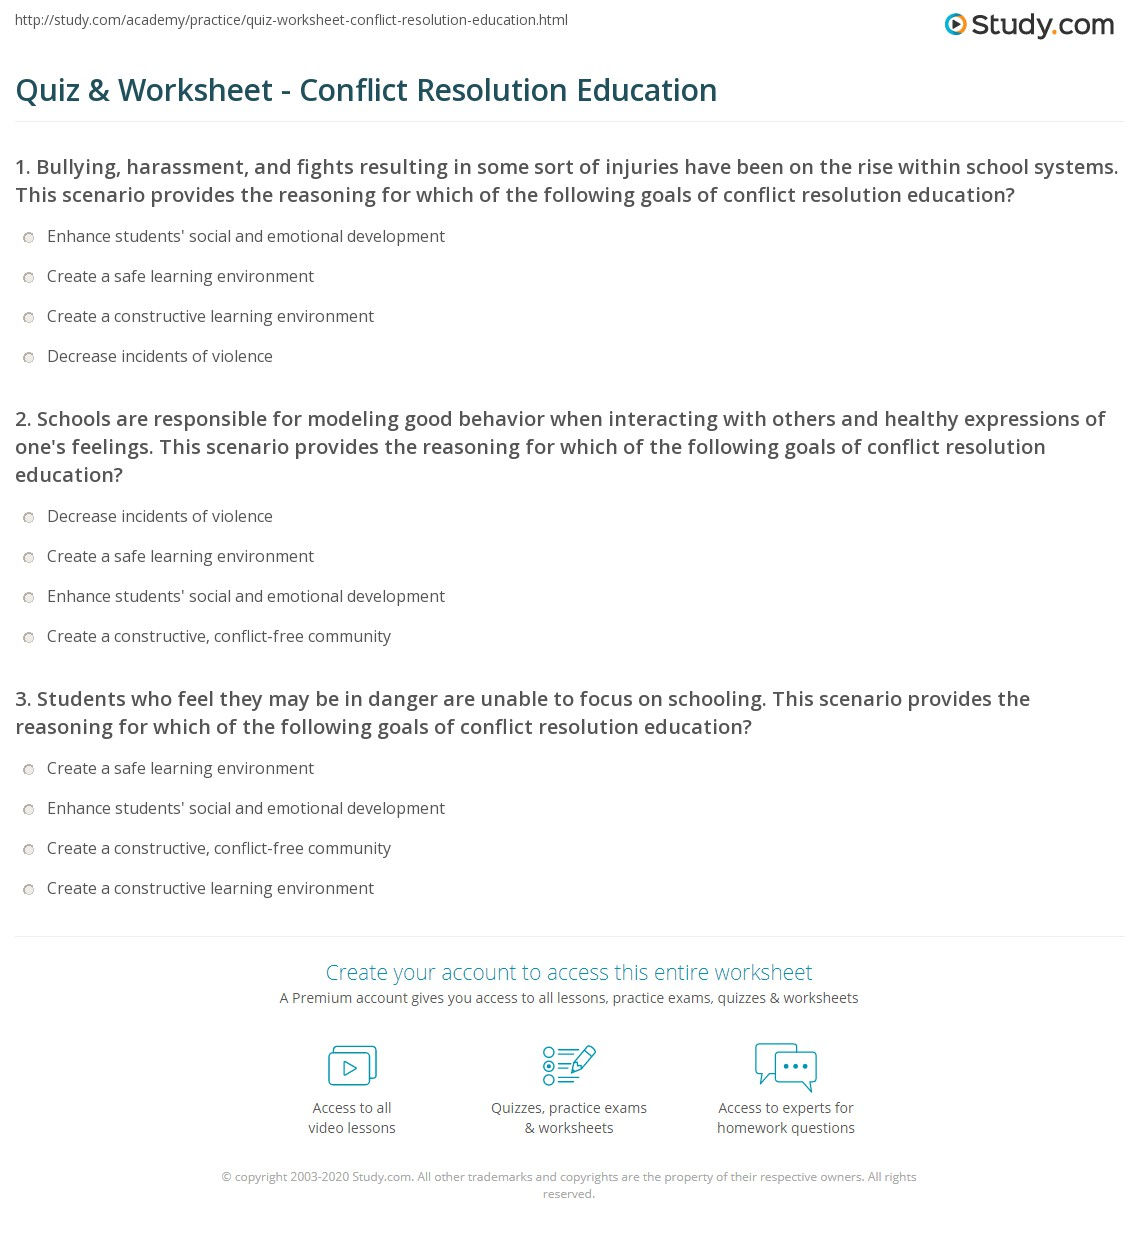 quiz & worksheet - conflict resolution education | study